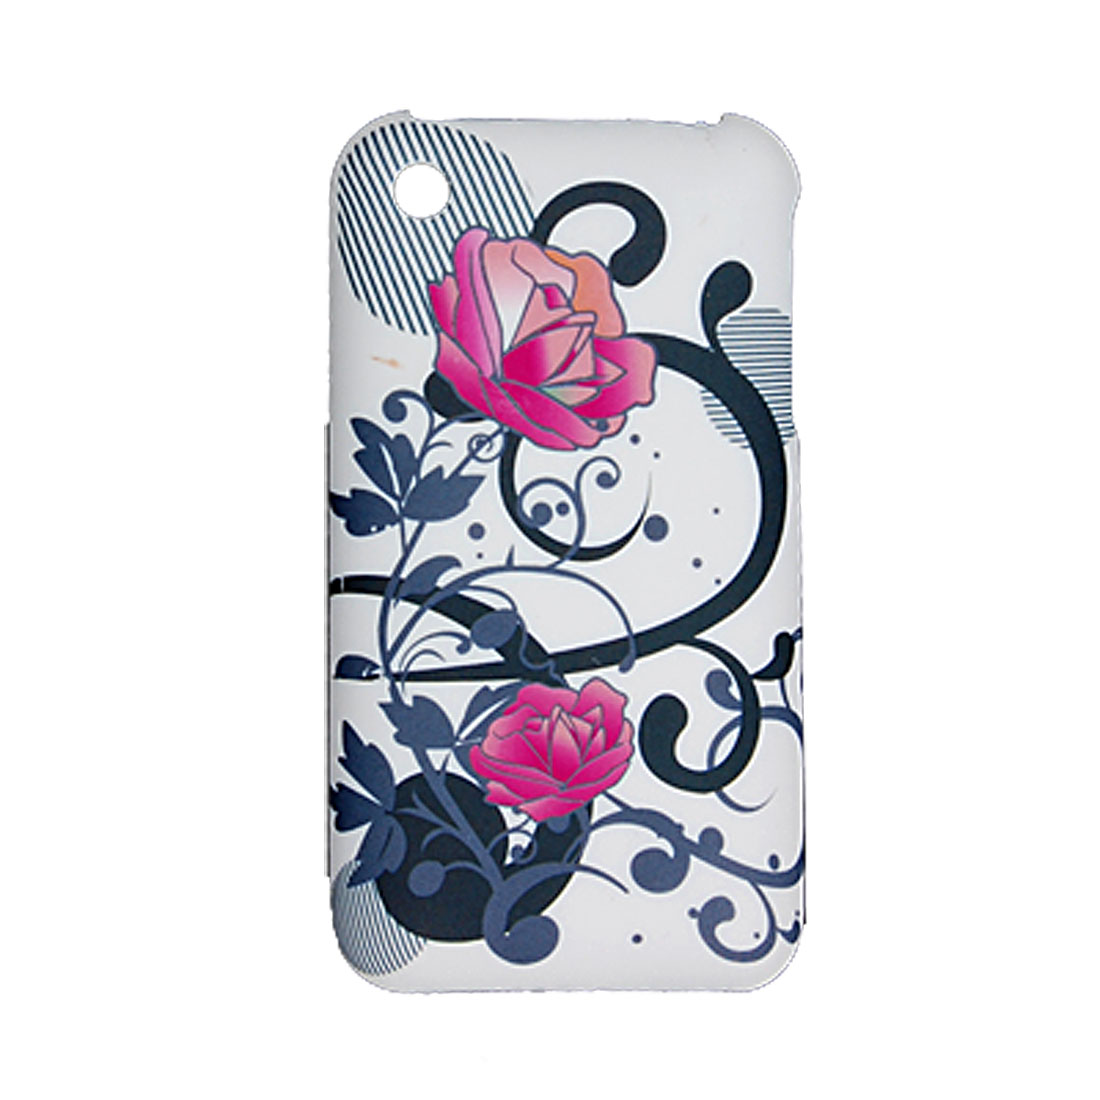 Rubberized Flower Pattern Plastic Case for Apple iPhone 3G